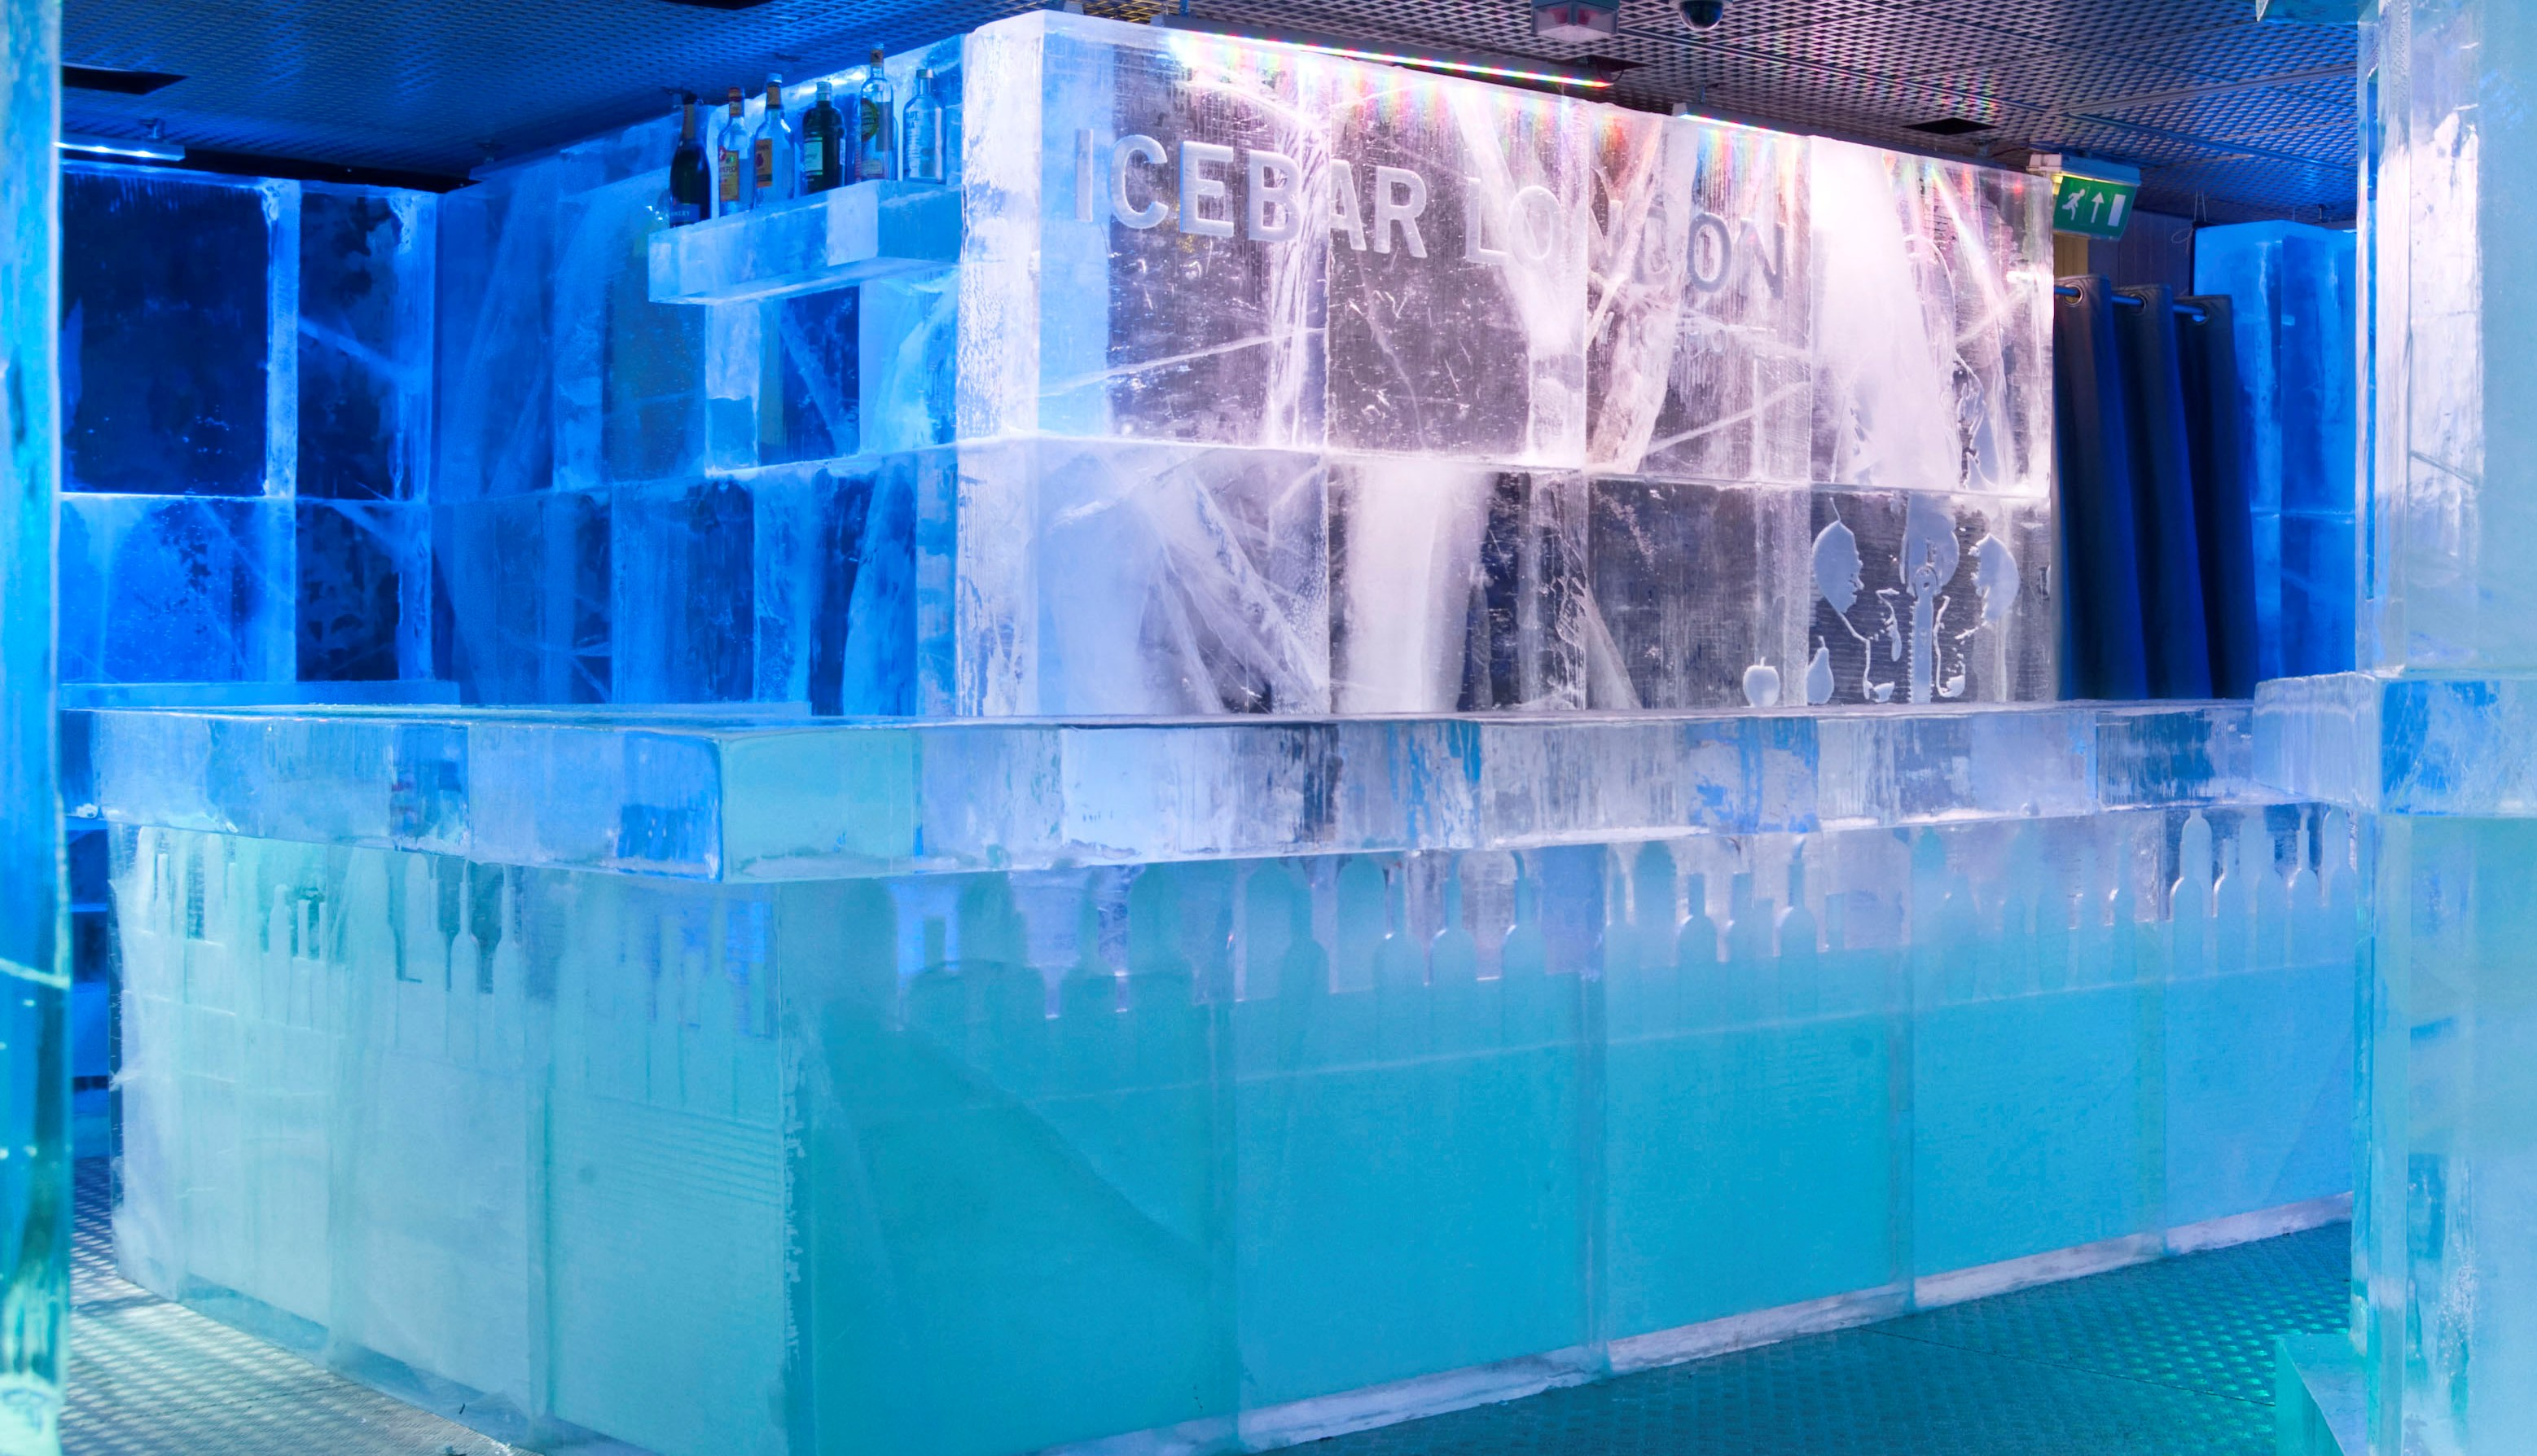 Its On Us >> ICEBAR LONDON | RealWire RealResource